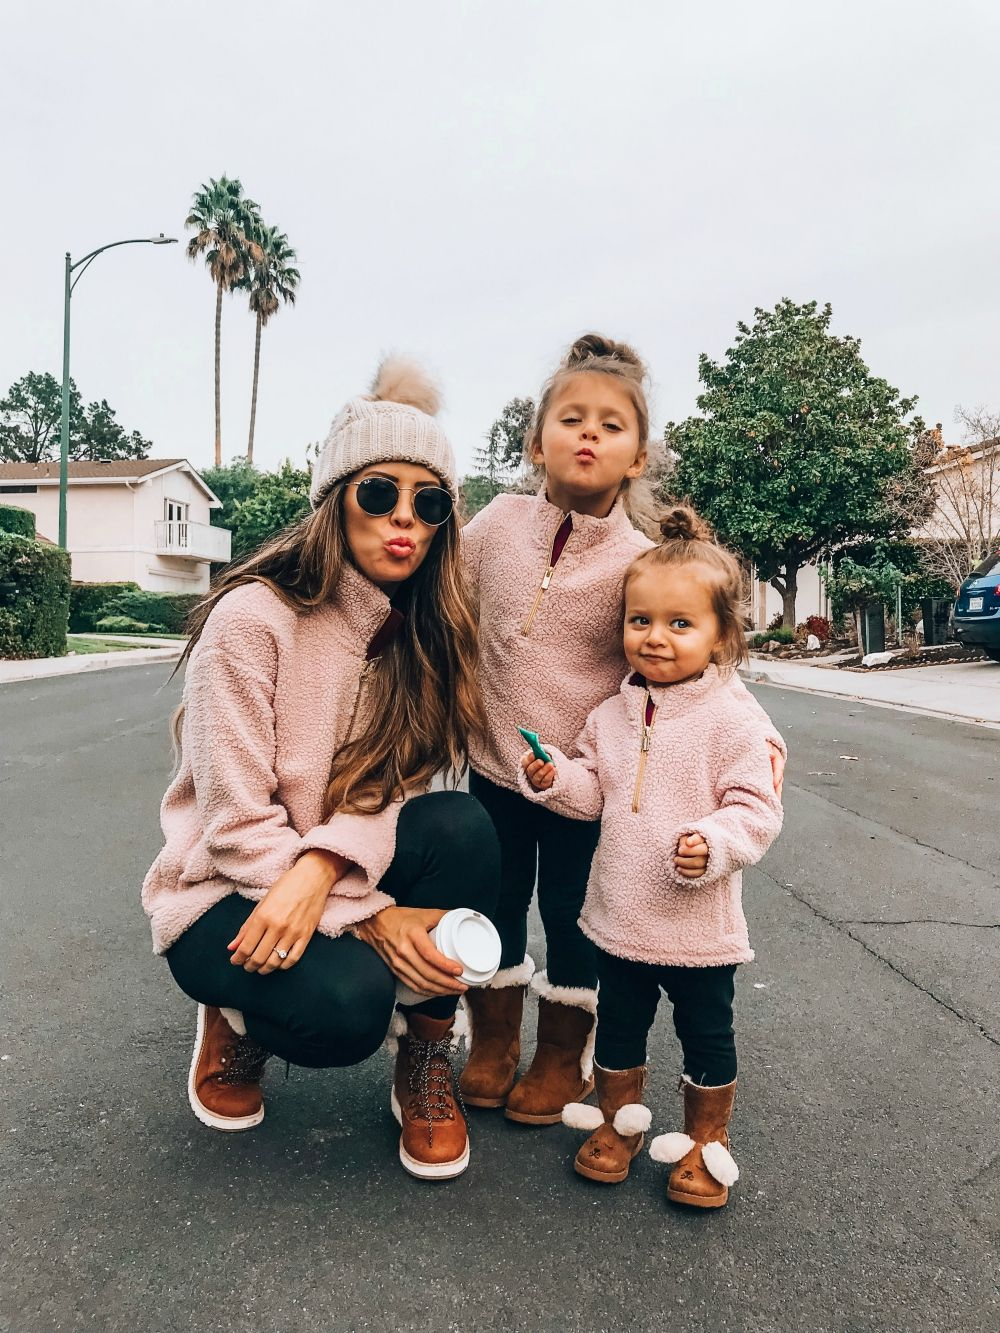 What's In My Shopping Cart | Fall Clothes | Winter Fashion | The Girl in The Yellow Dress | Family Style | Girls Clothes | Outfits #thegirlintheyellowdress #fall #outfits #shopping #blogger